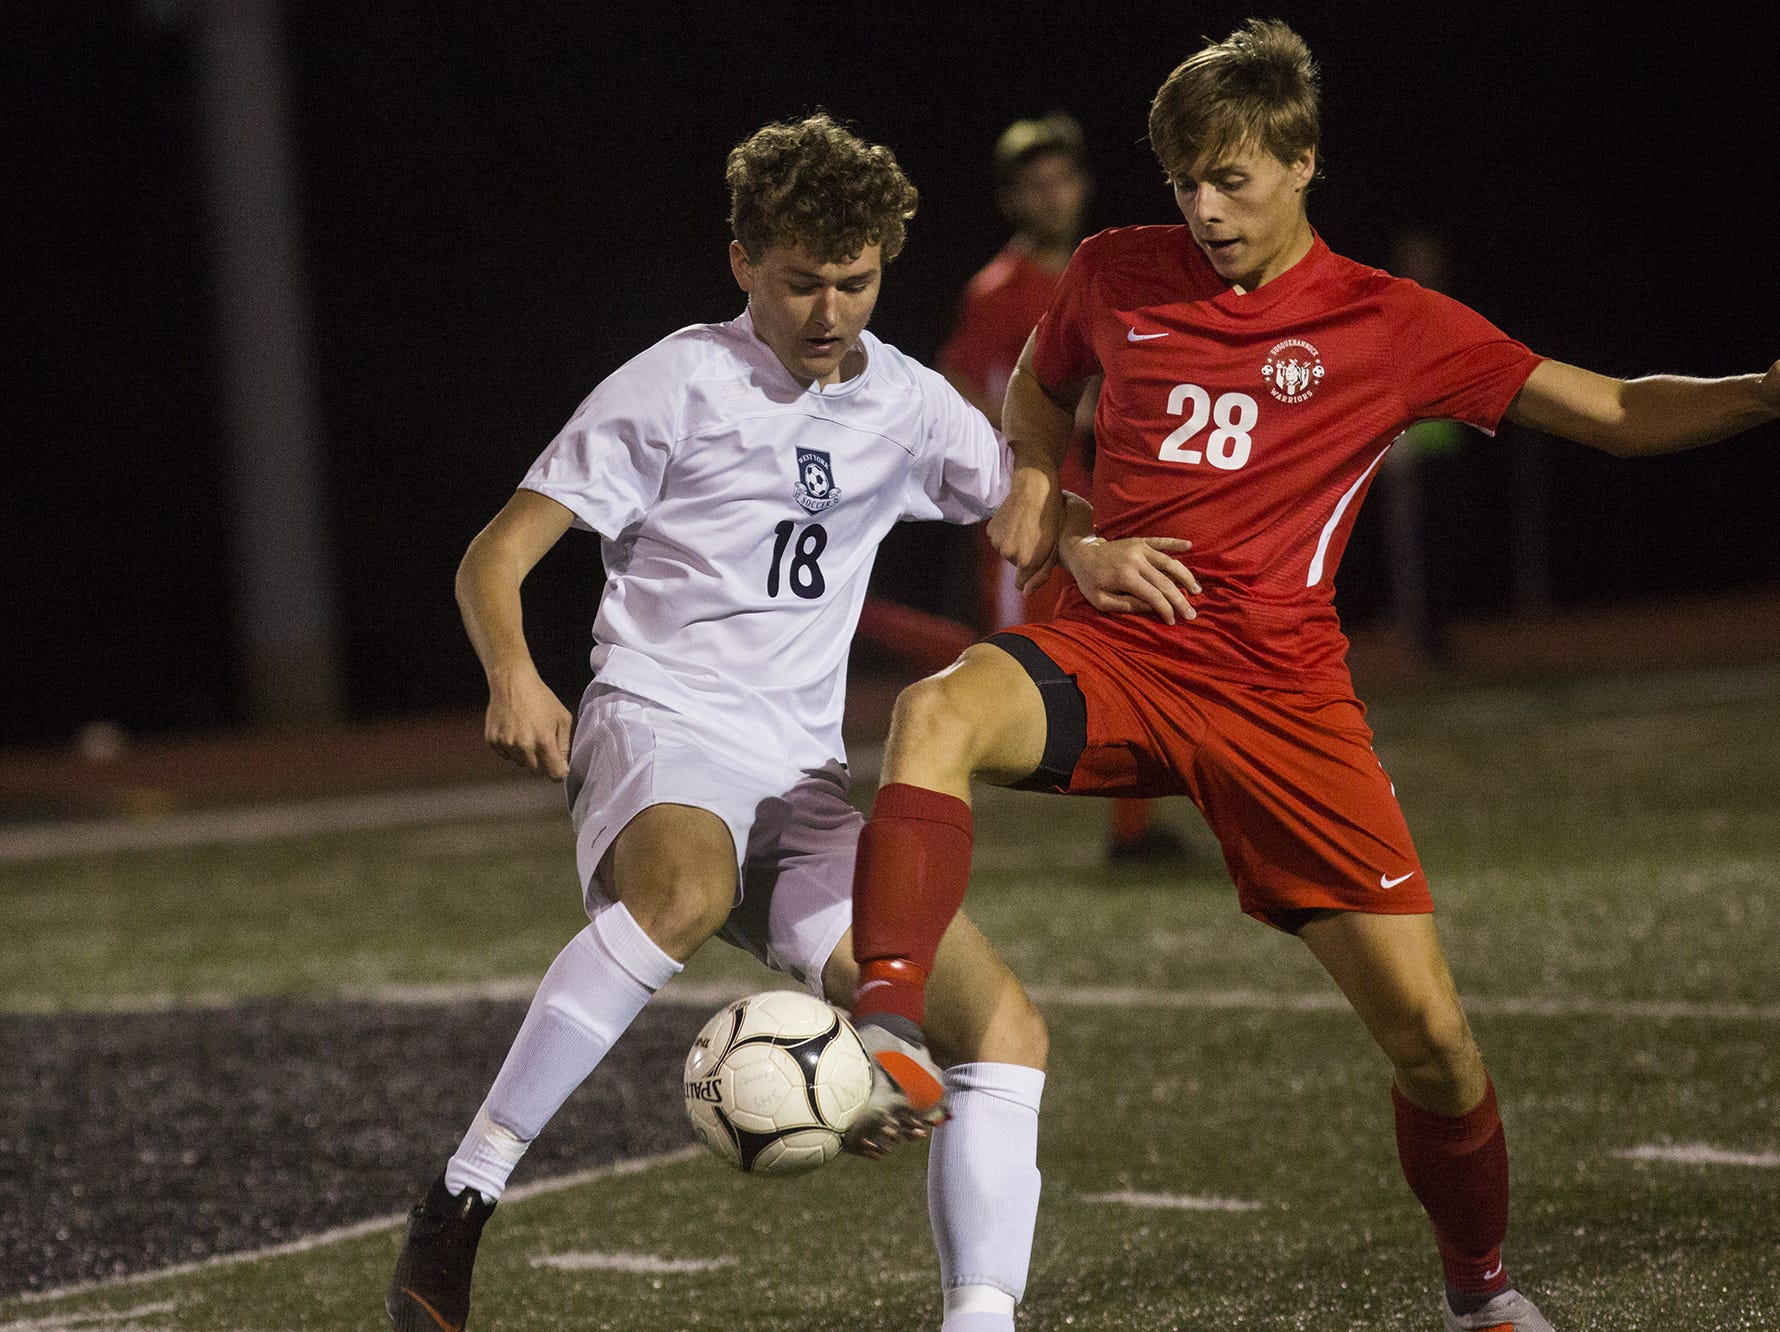 West York's Aidan Clark, left, and Susquehannock's Nathan Weldon compete for the ball. Susquehannock plays West York in the YAIAA boys' soccer championship game at Northeastern High School in Manchester, Saturday, October 20, 2018.